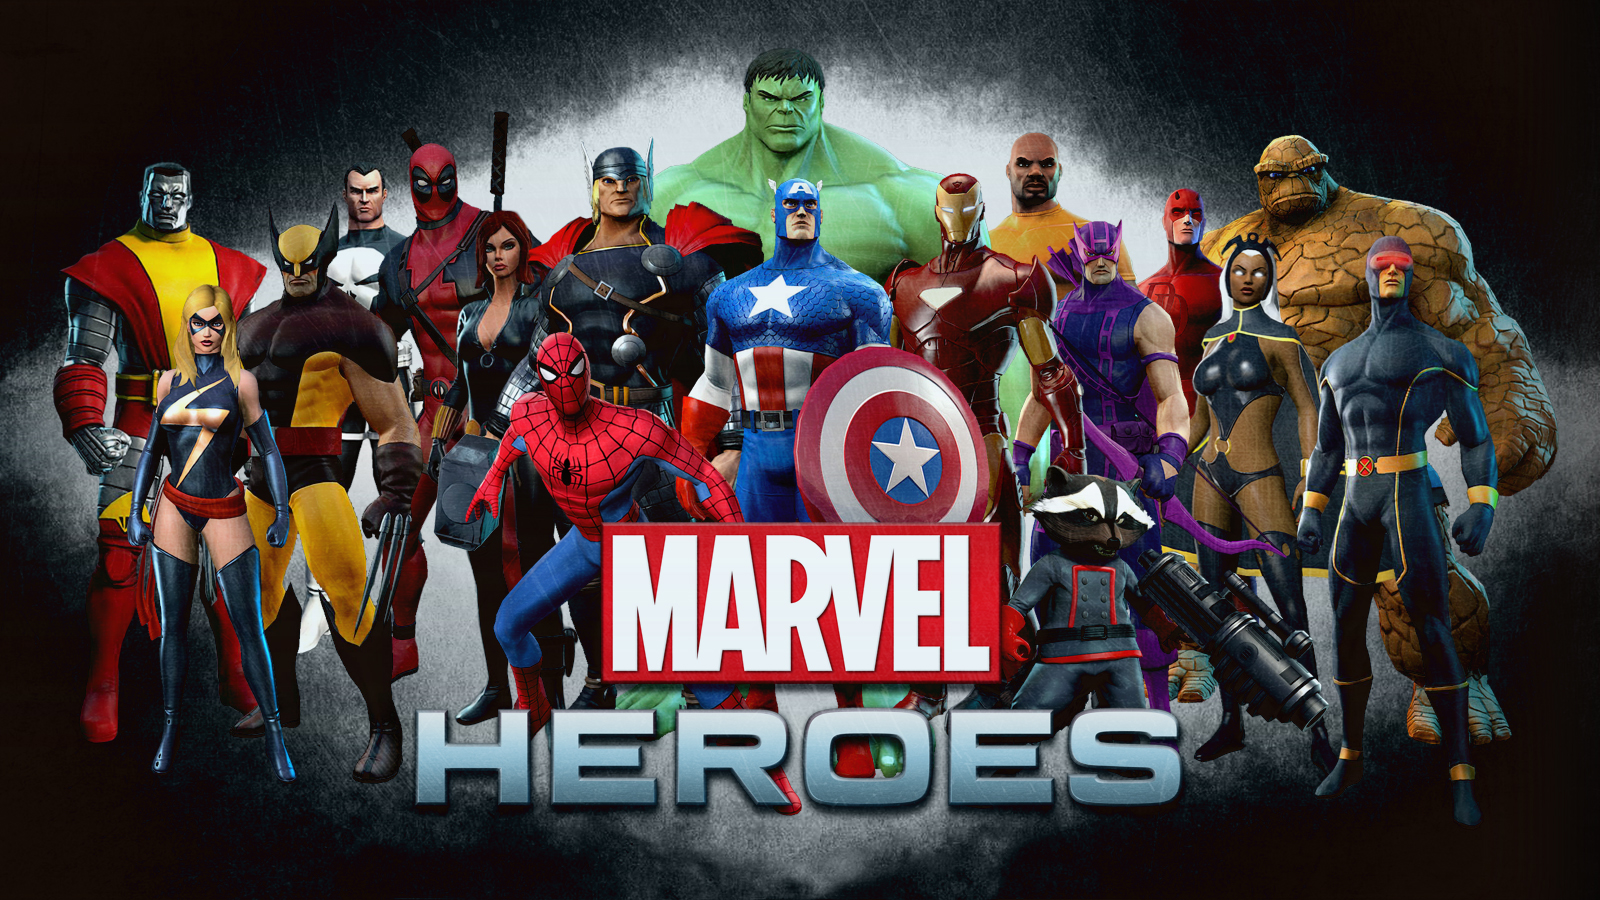 Marvel Heroes wallpaper 1600x900 73788 WallpaperUP 1600x900